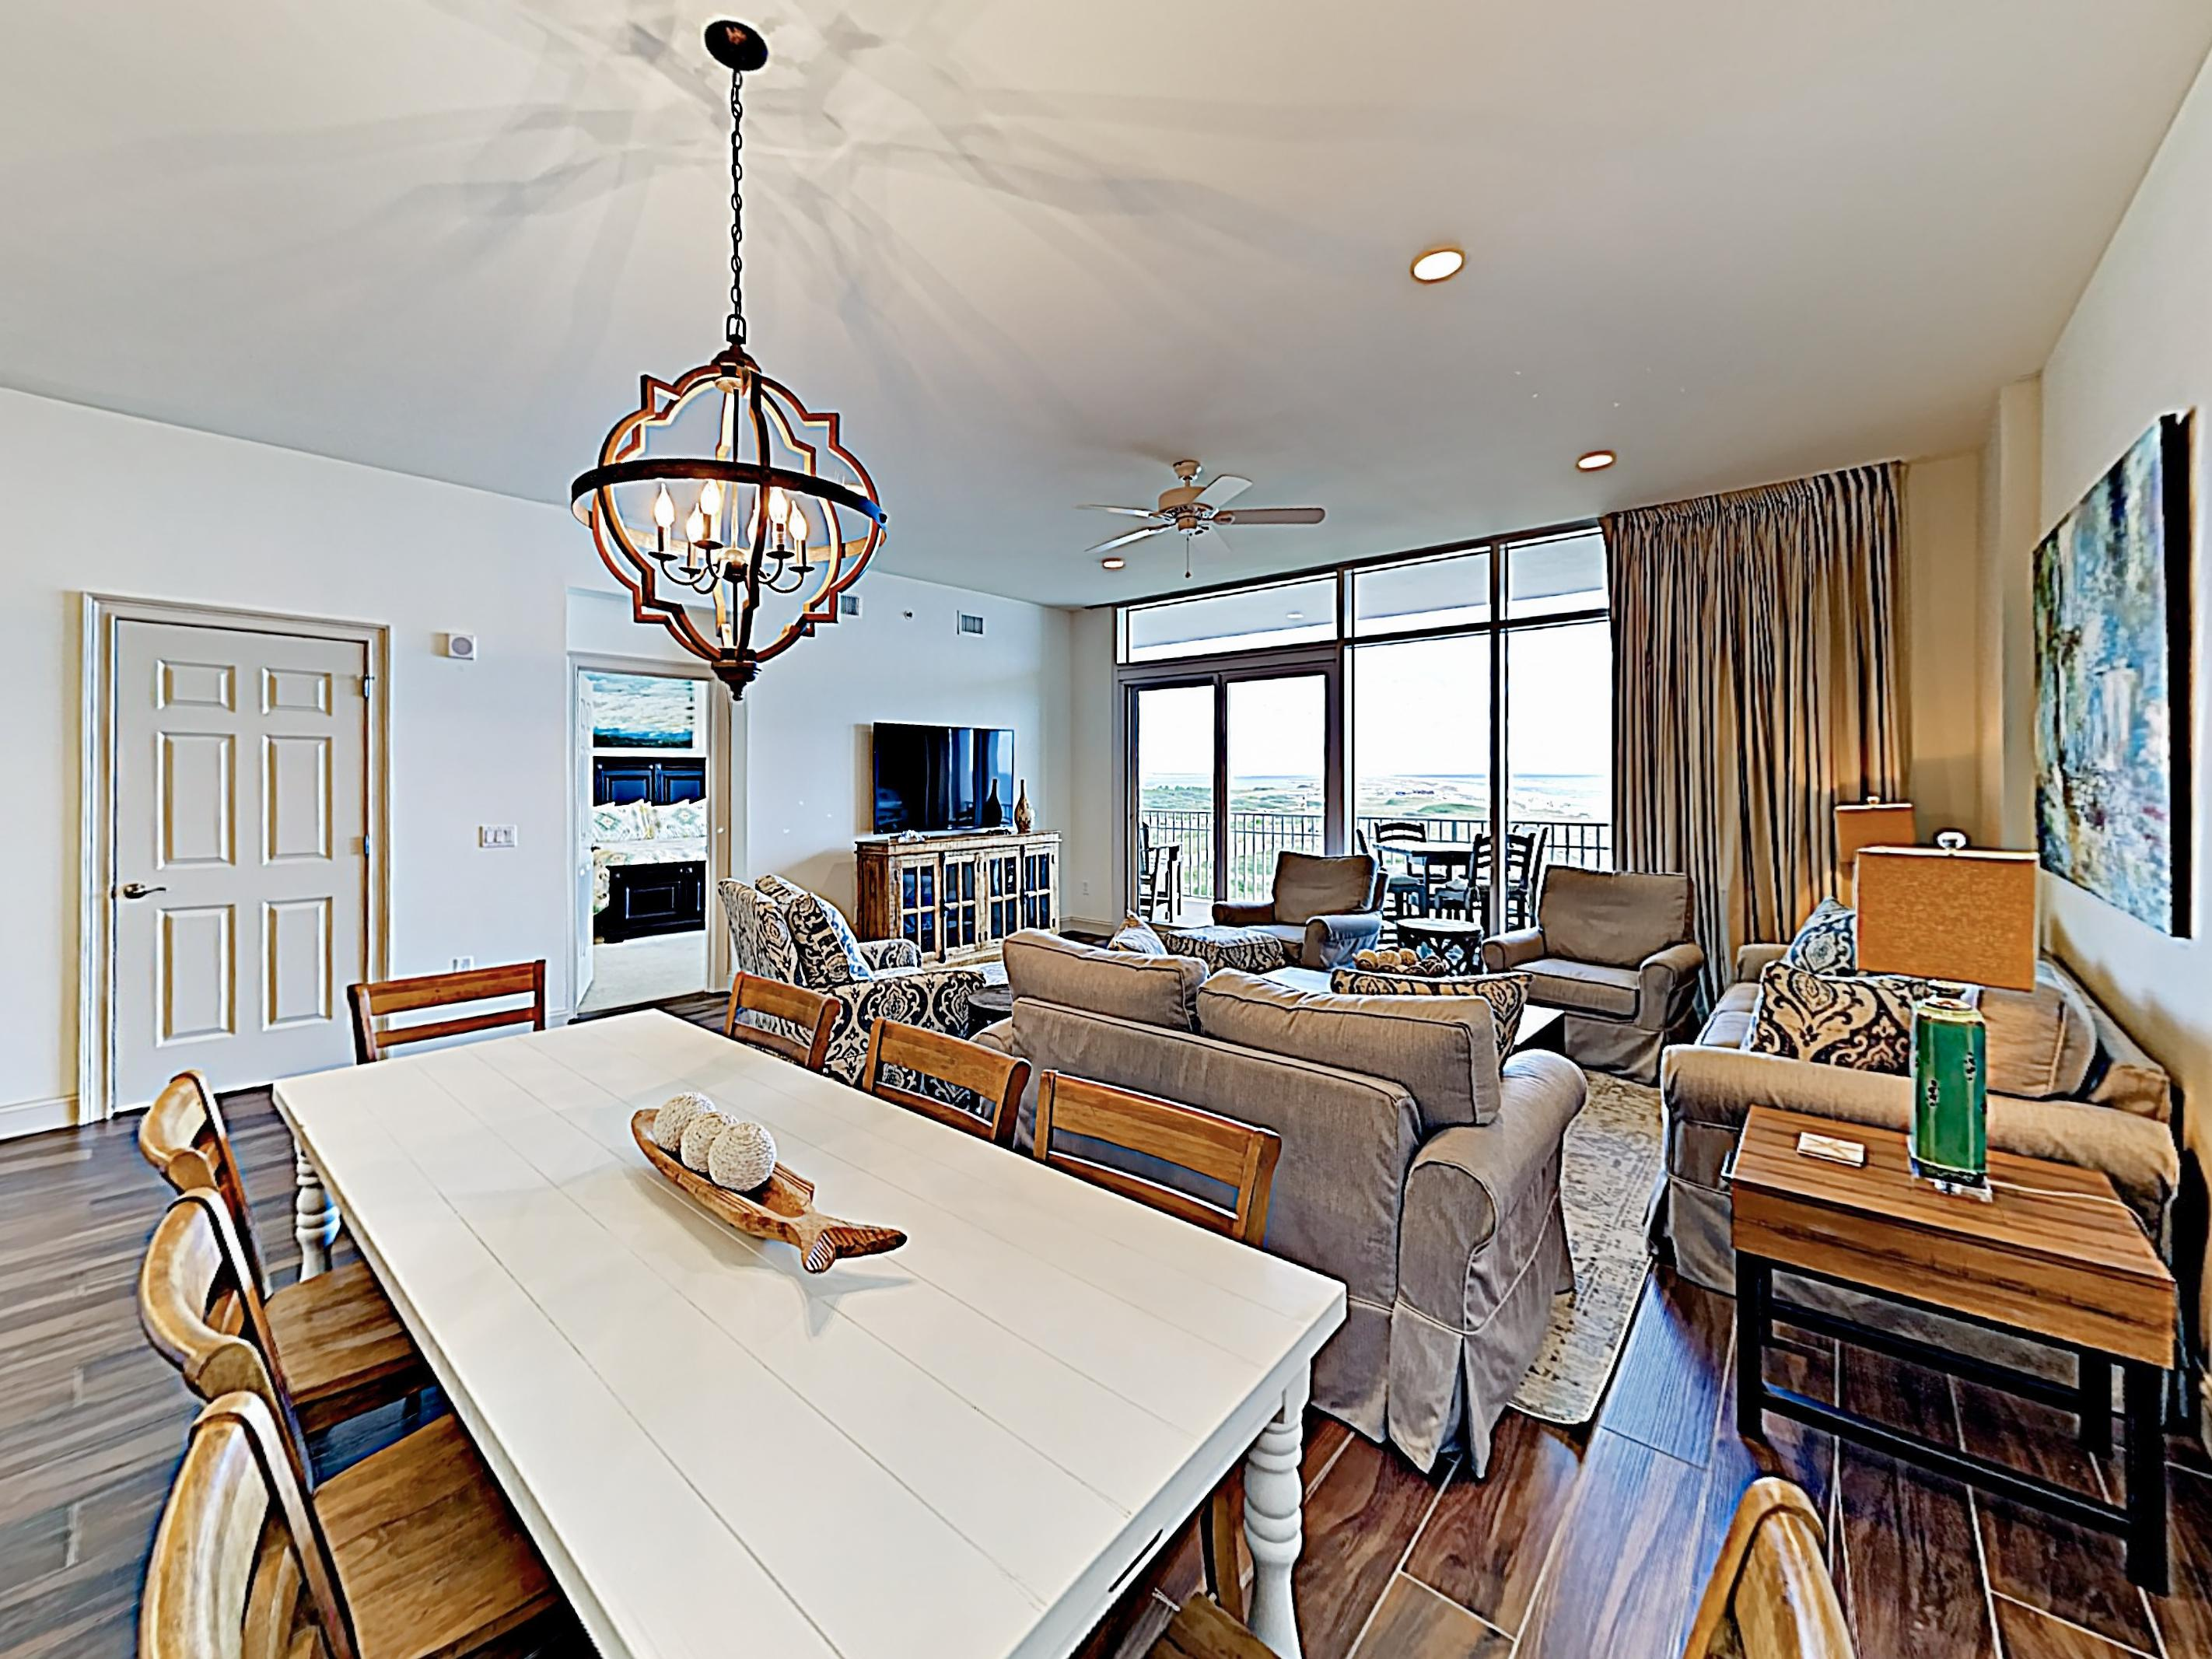 Welcome to Vista del Mar! This condo is professionally managed by TurnKey Vacation Rentals.